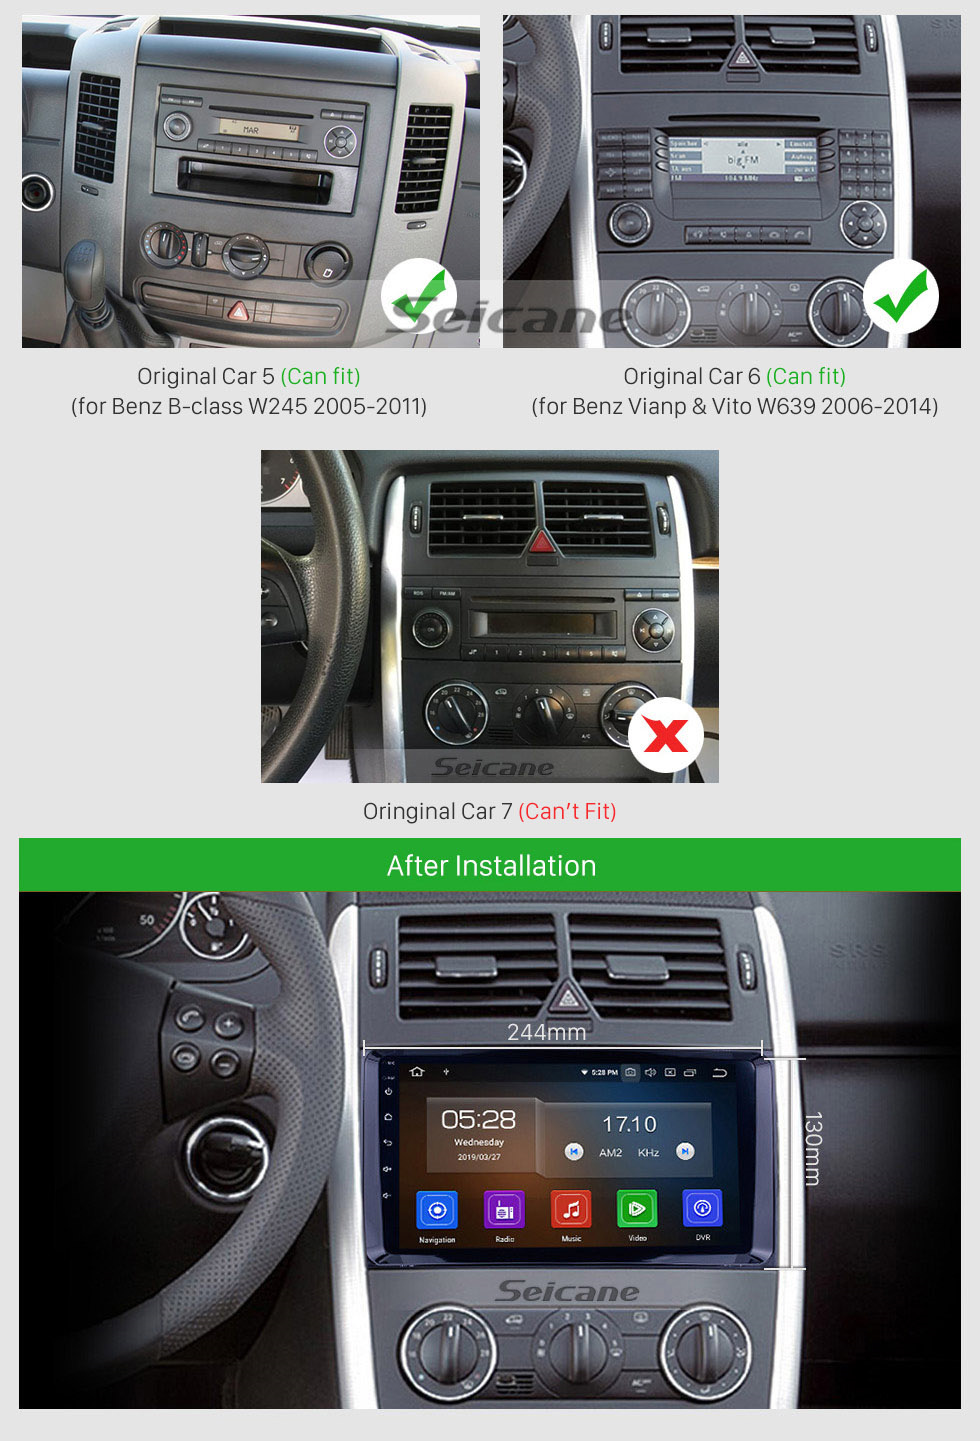 Seicane 9 inch Android 10.0 Aftermarket Radio for 2000-2015 VW Volkswagen Crafter for DVD player Bluetooth music GPS navigation system car stereo WiFi Mirror Link HD 1080P Video